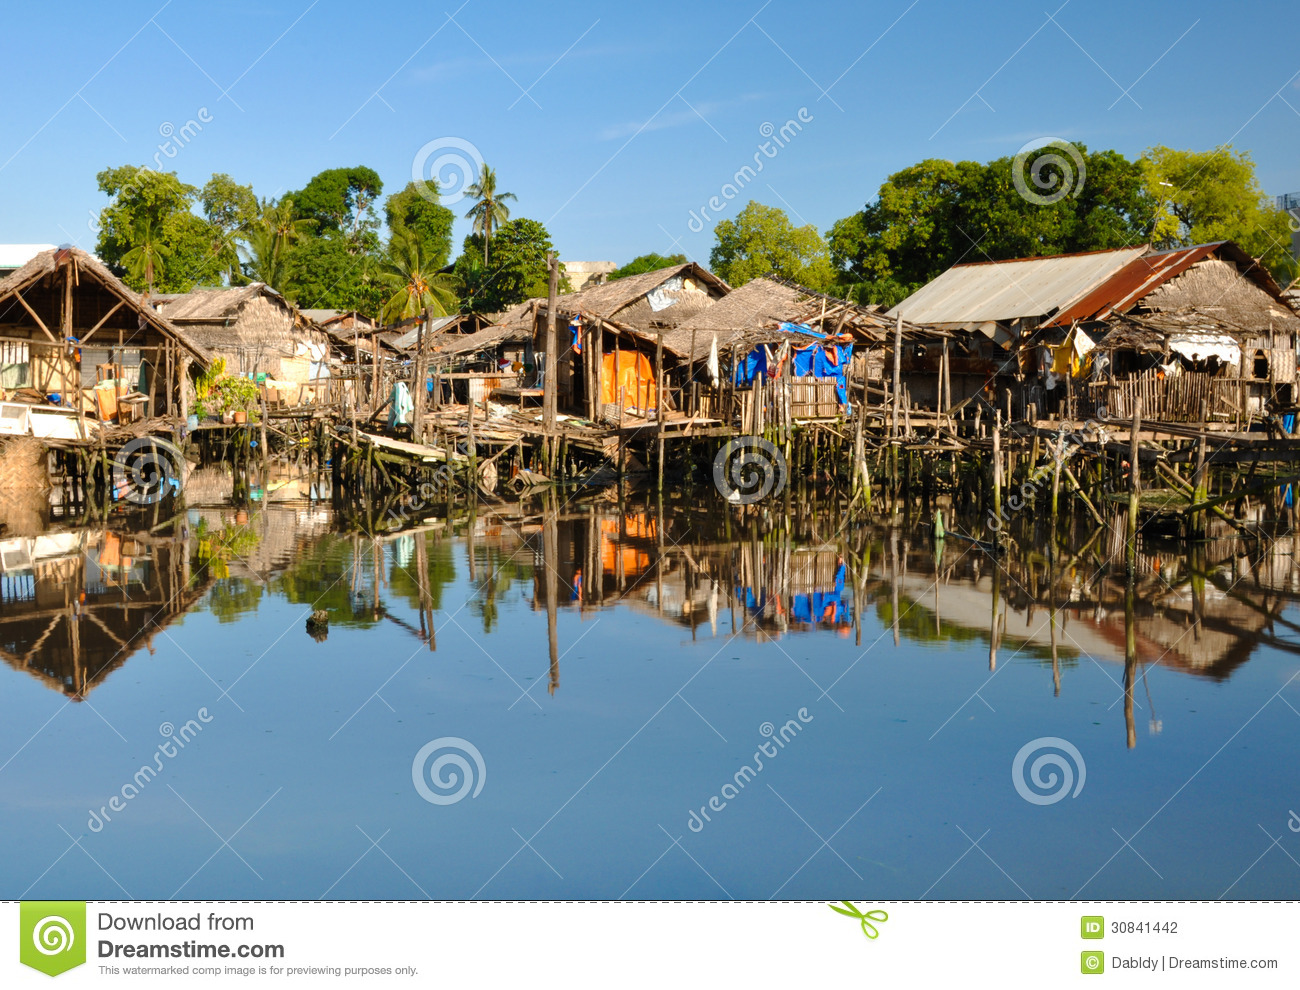 House close to water clipart.